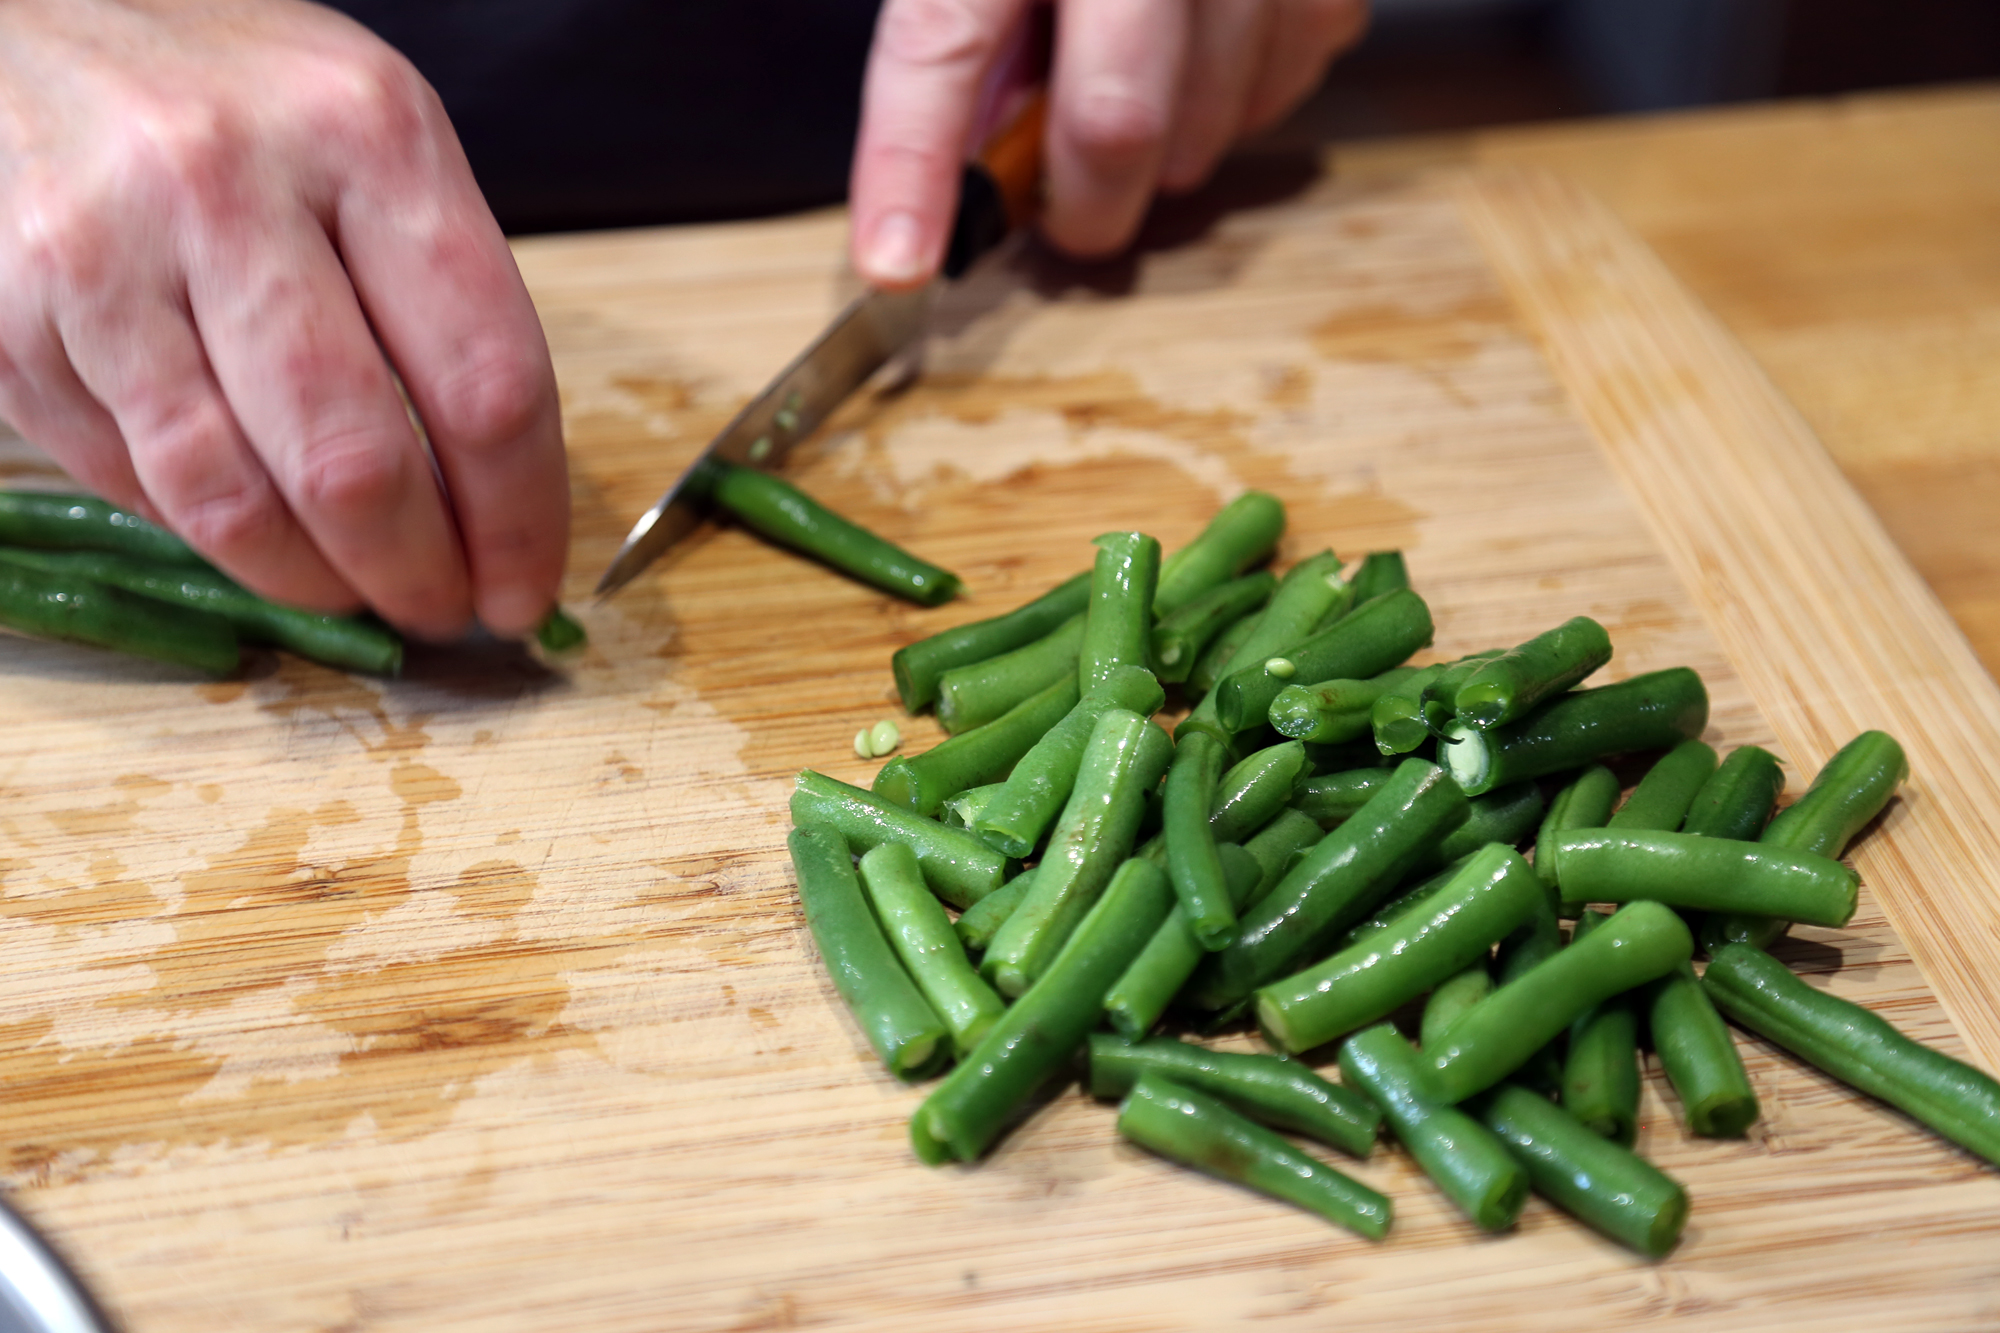 Trim and cut green beans into 1-inch lengths.